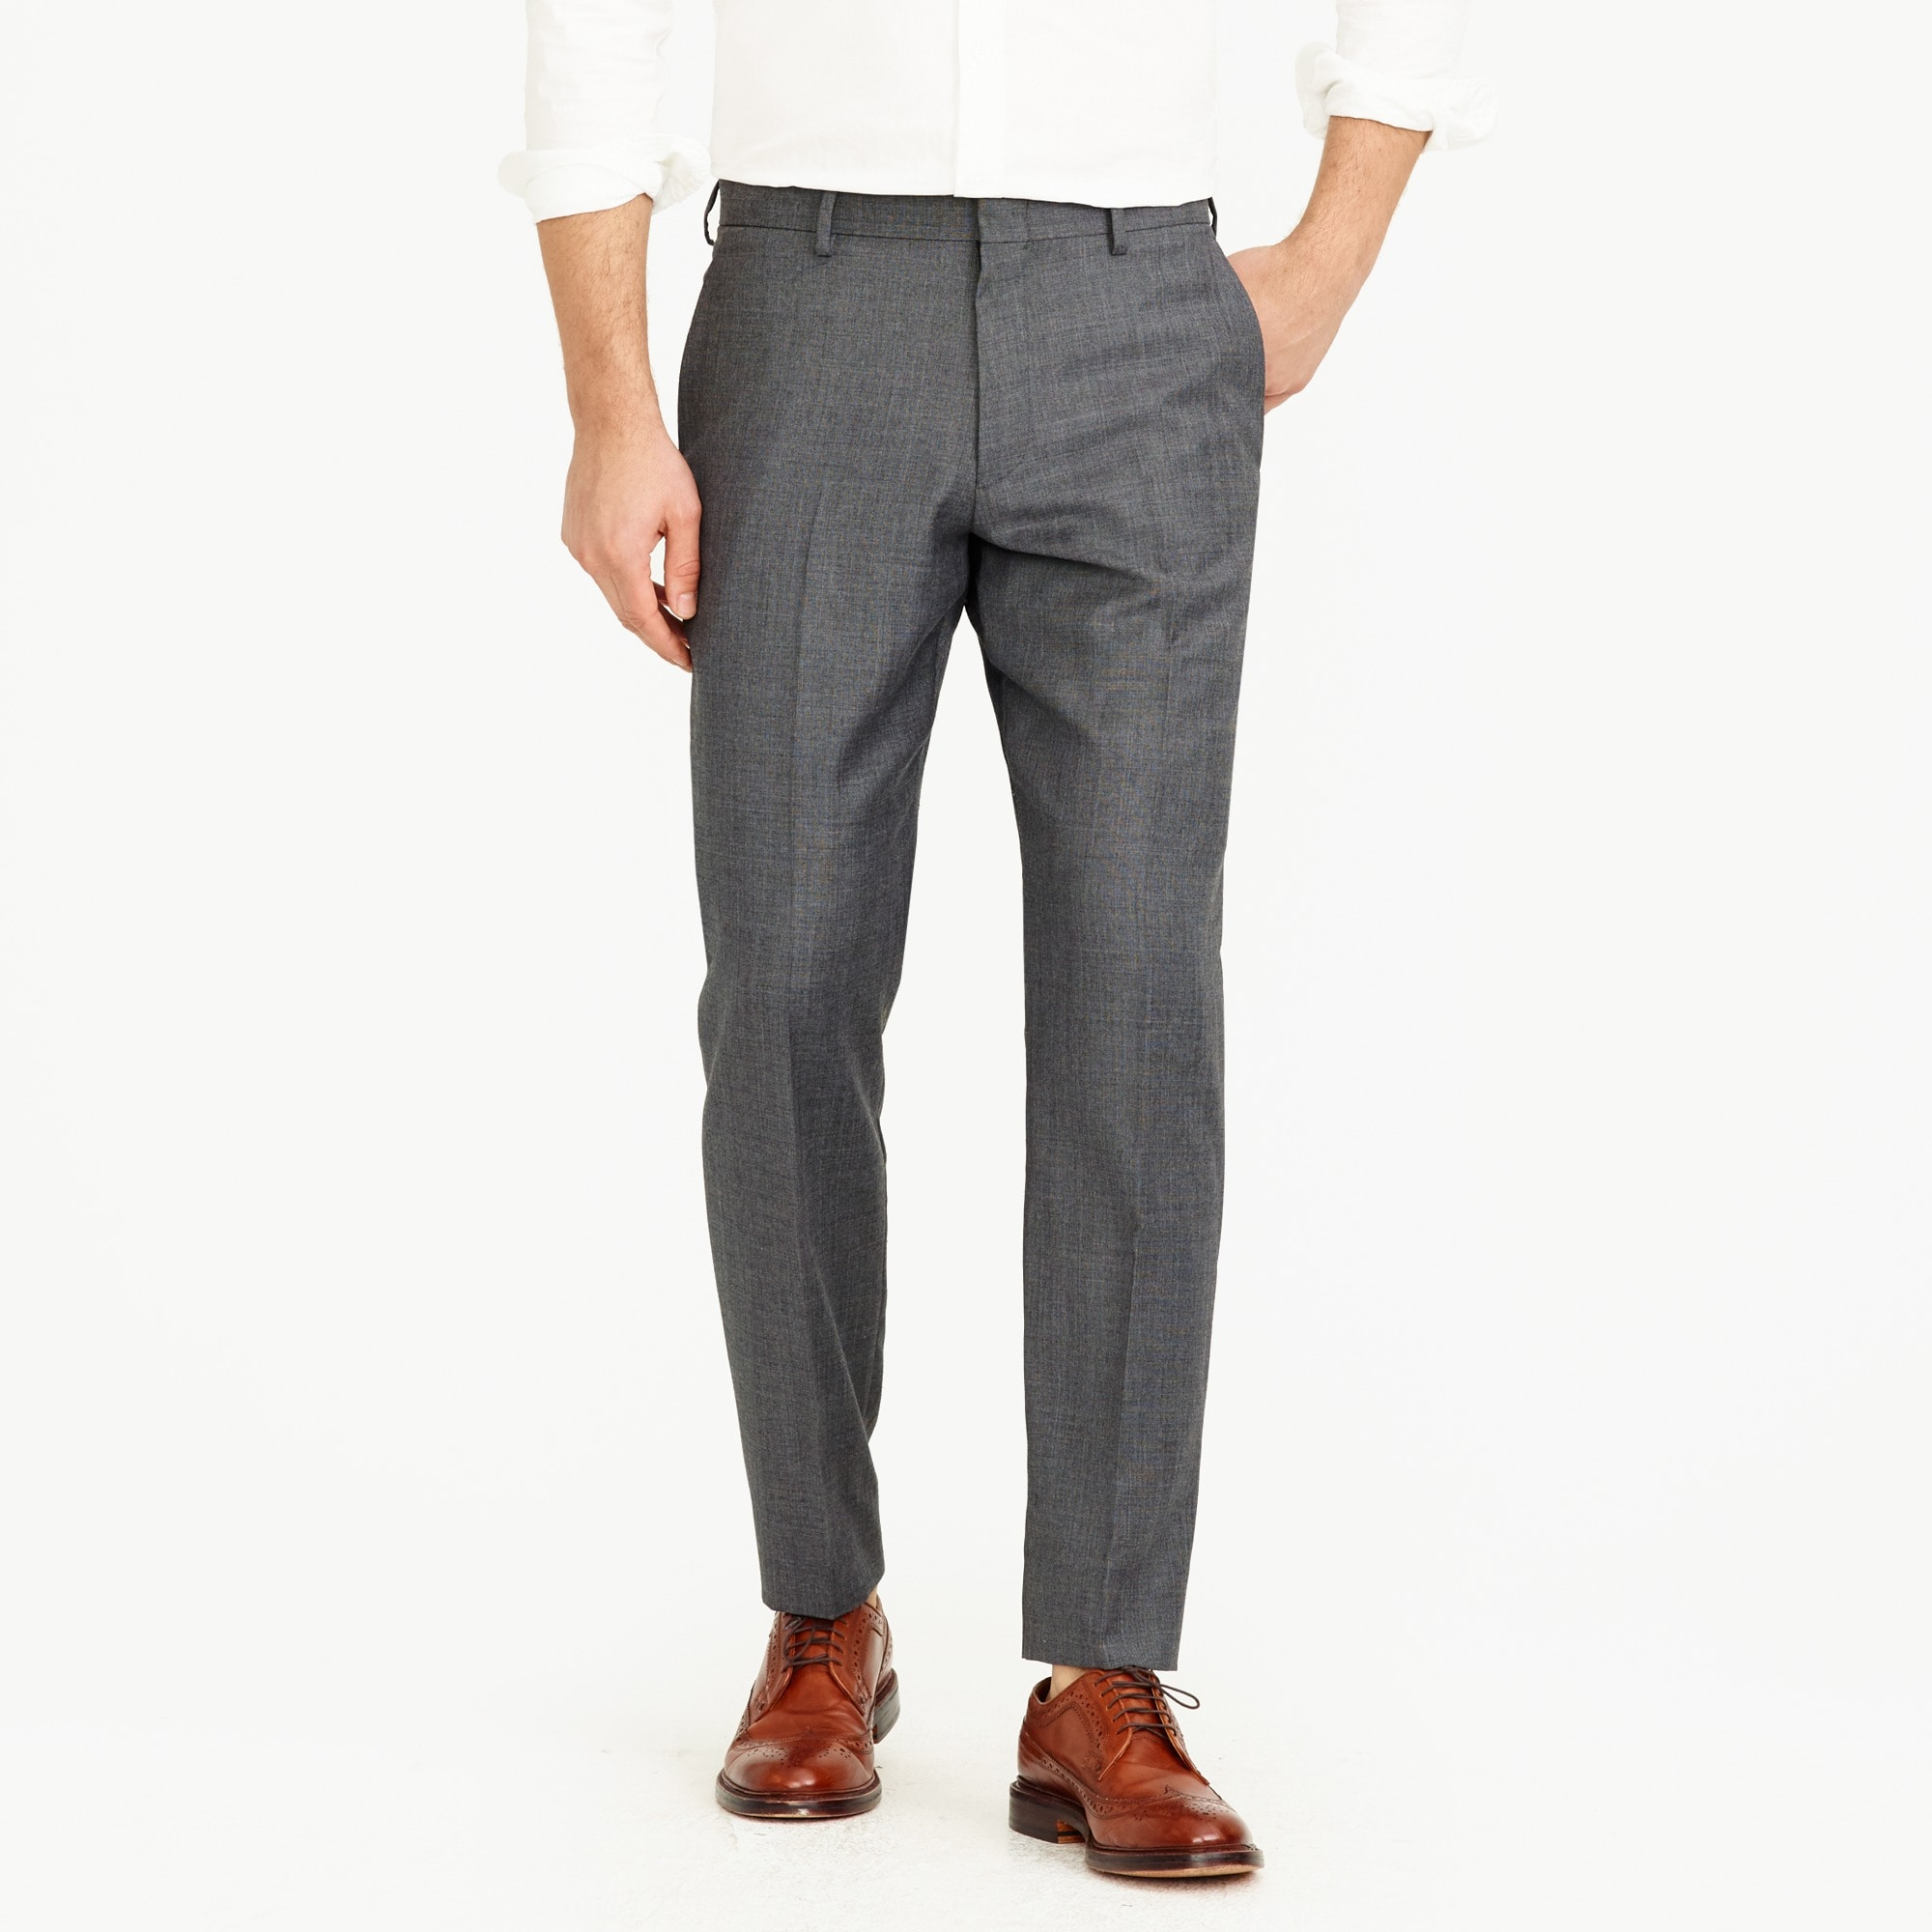 Image 1 for Crosby suit pant in Italian worsted wool